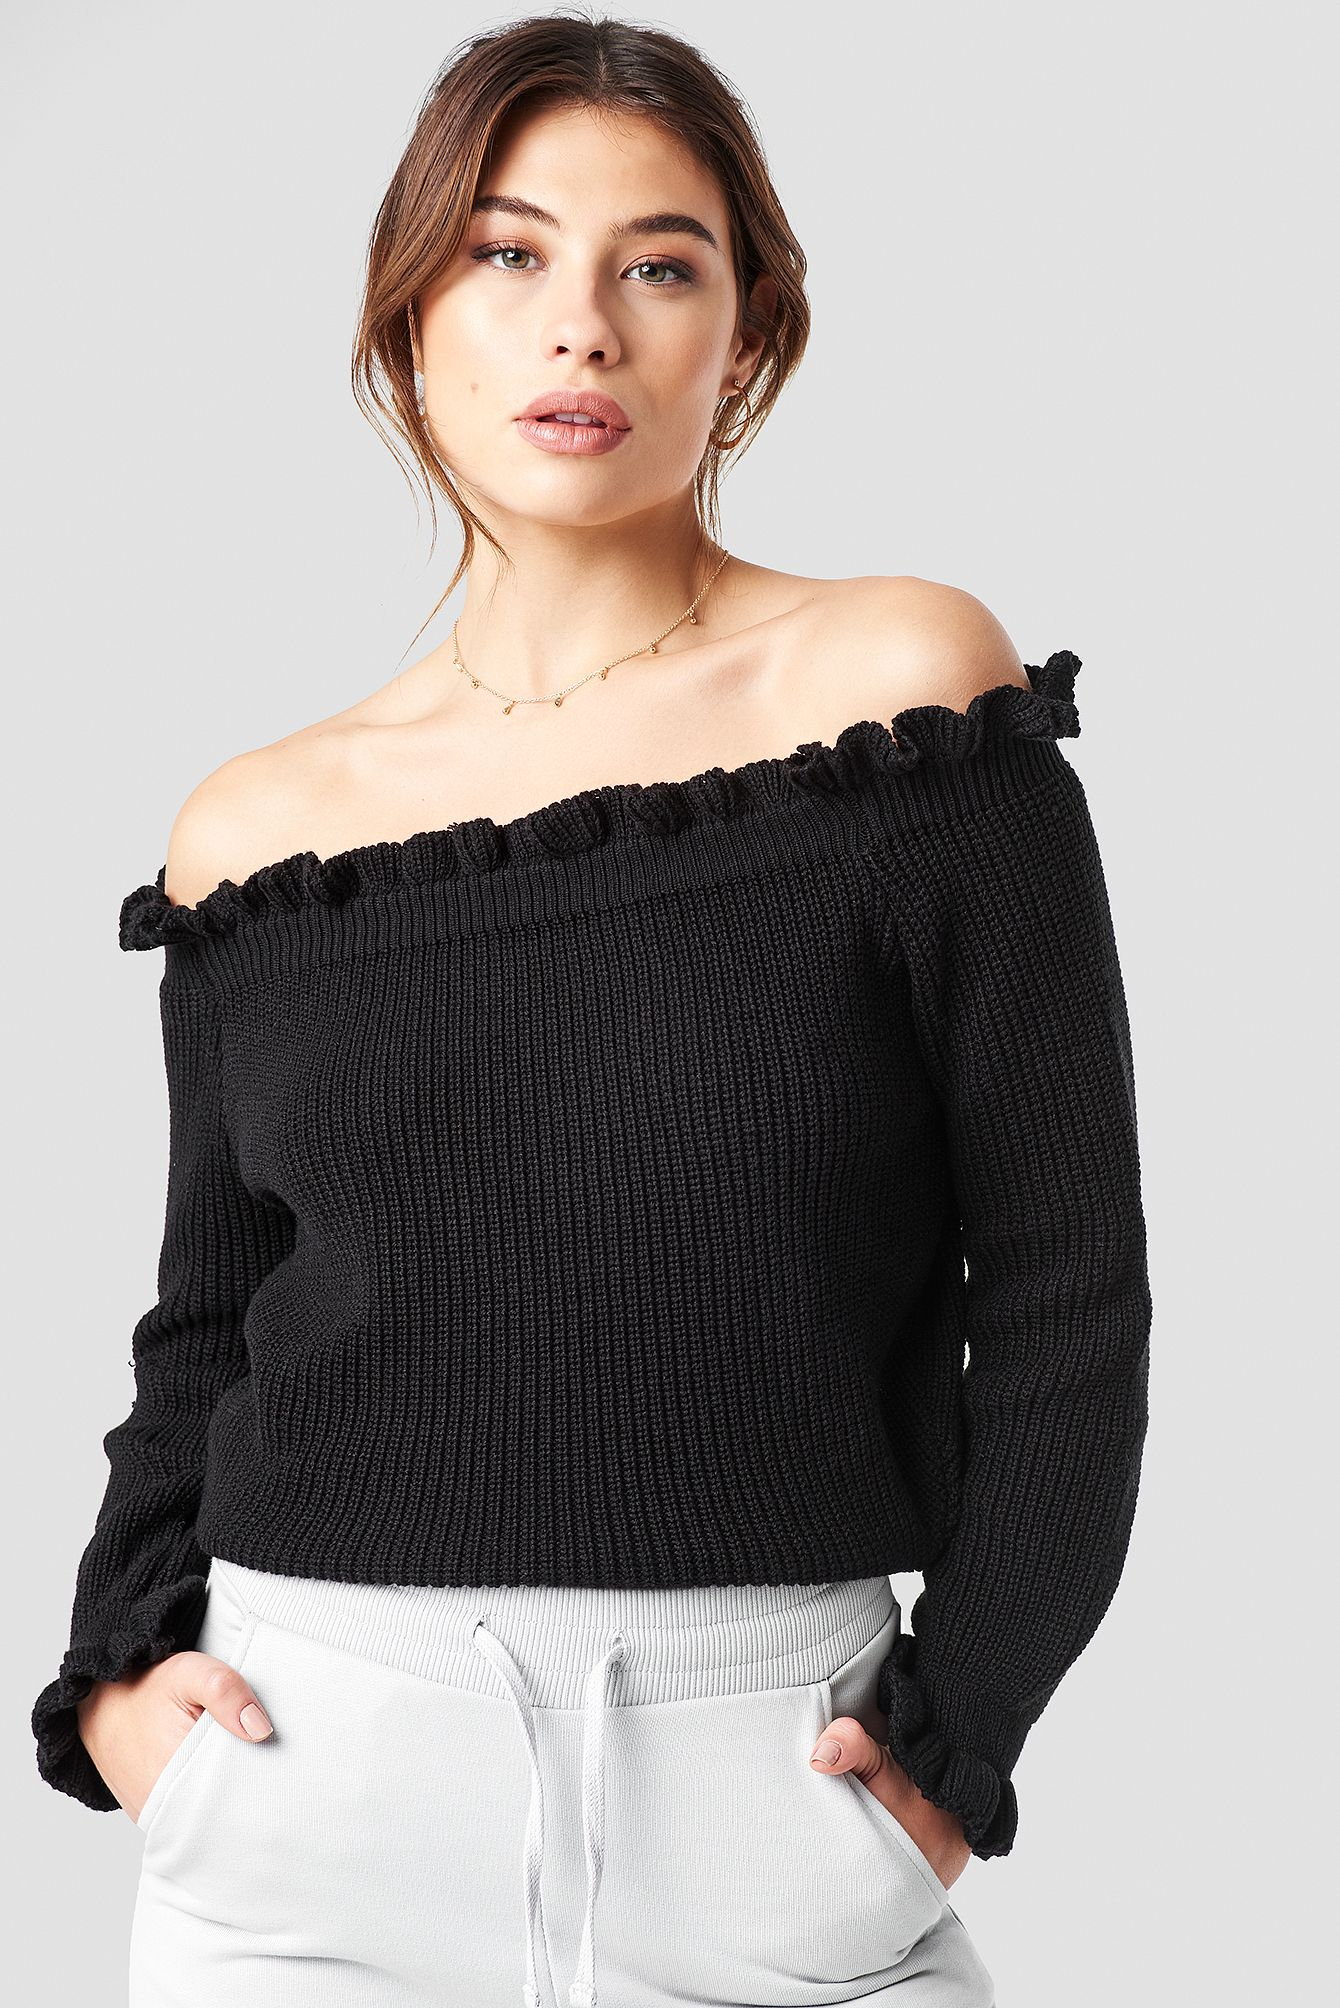 Ruffle Off Shoulder Knitted Sweater | Outfit in 2019 | Beige